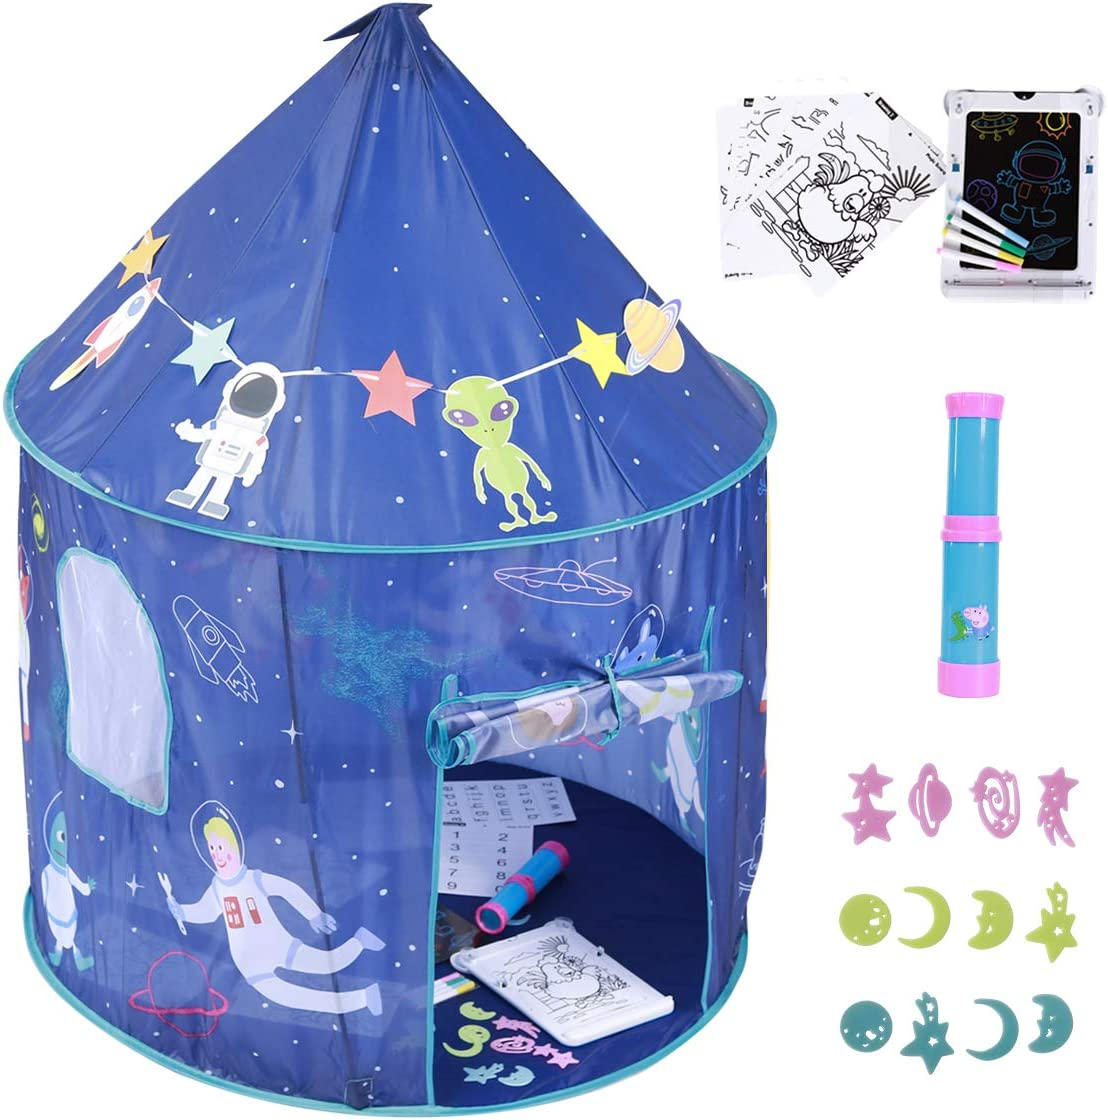 Colorhome Playhouse for Kids Indoor Boys Tent, with Toys Girls Play House Toddler Tents Outdoor Castle Children Fort Storage Carry Bag